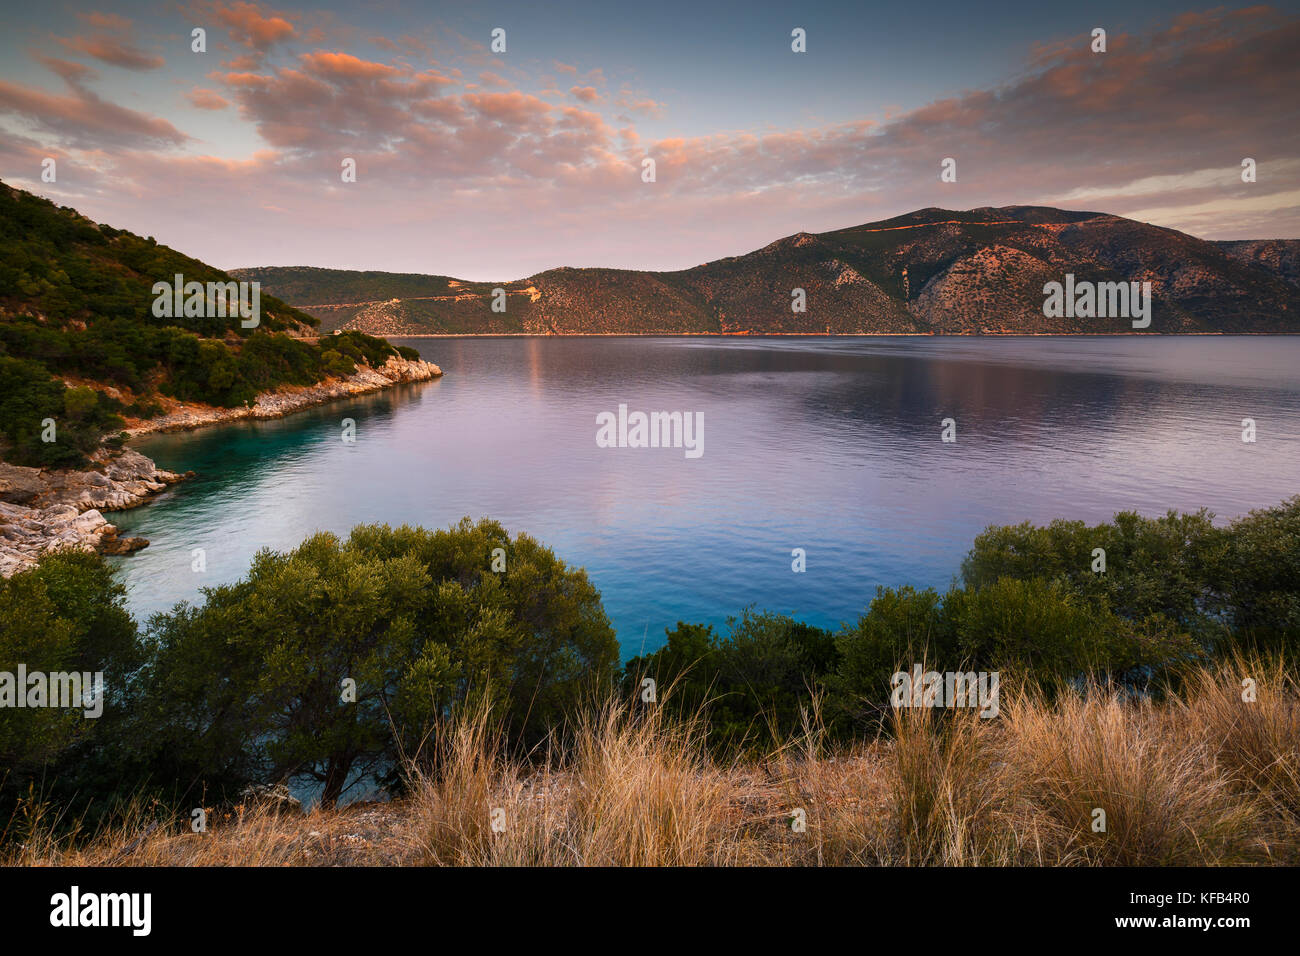 Morning view of Molos Gulf in Ithaca island, Greece. - Stock Image